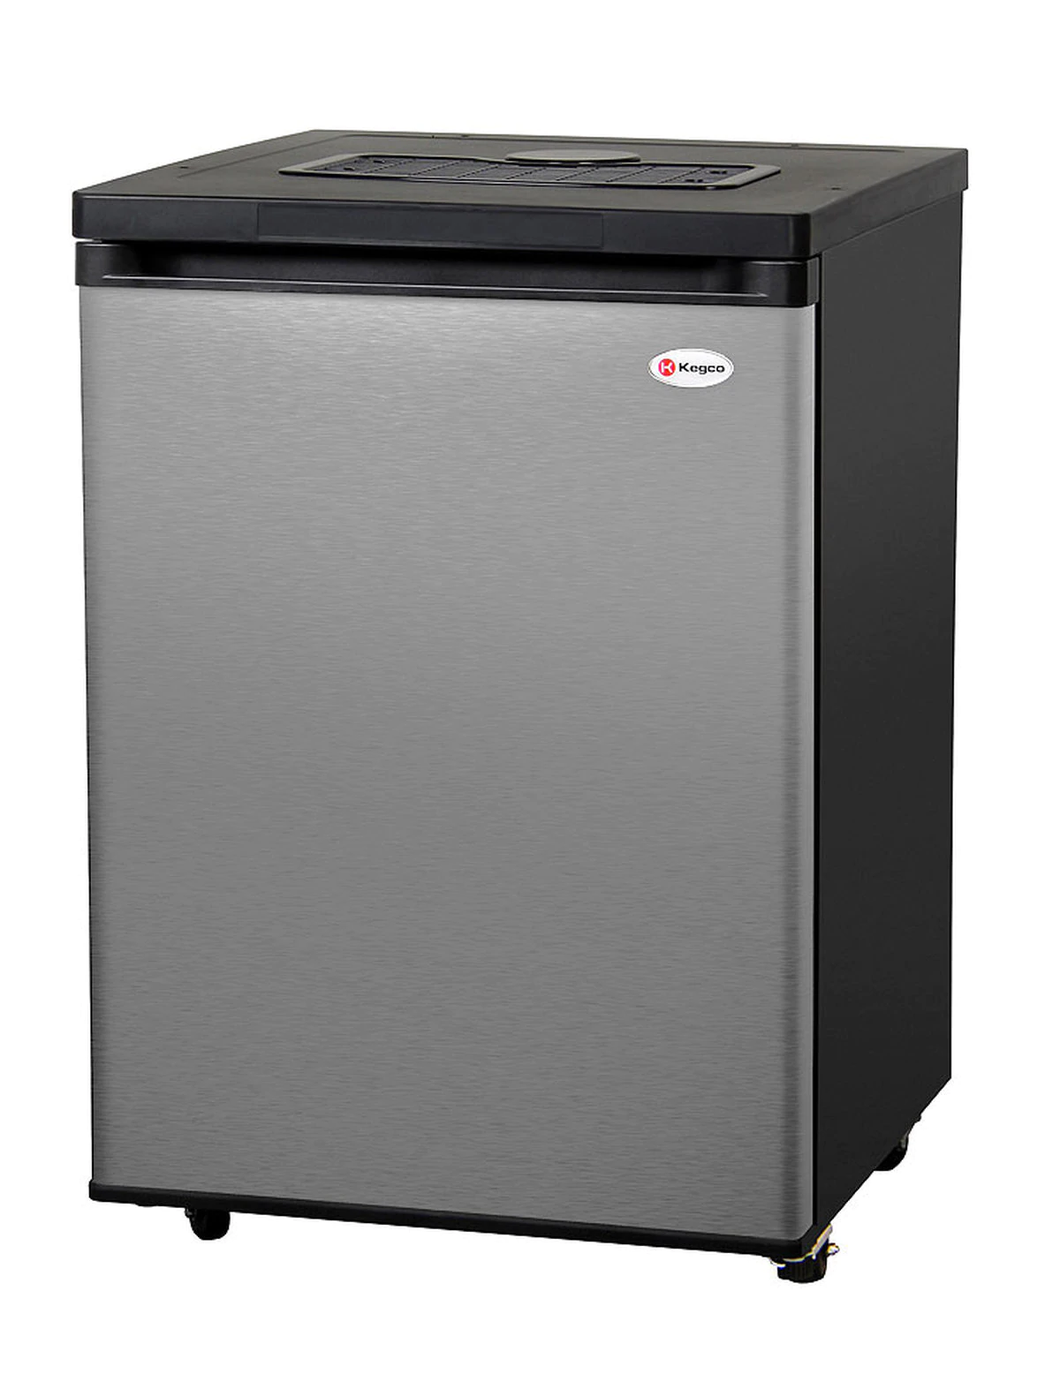 FULL SIZE KEGERATOR - BLACK CABINET WITH STAINLESS STEEL DOOR - NO KIT, CABINET ONLY